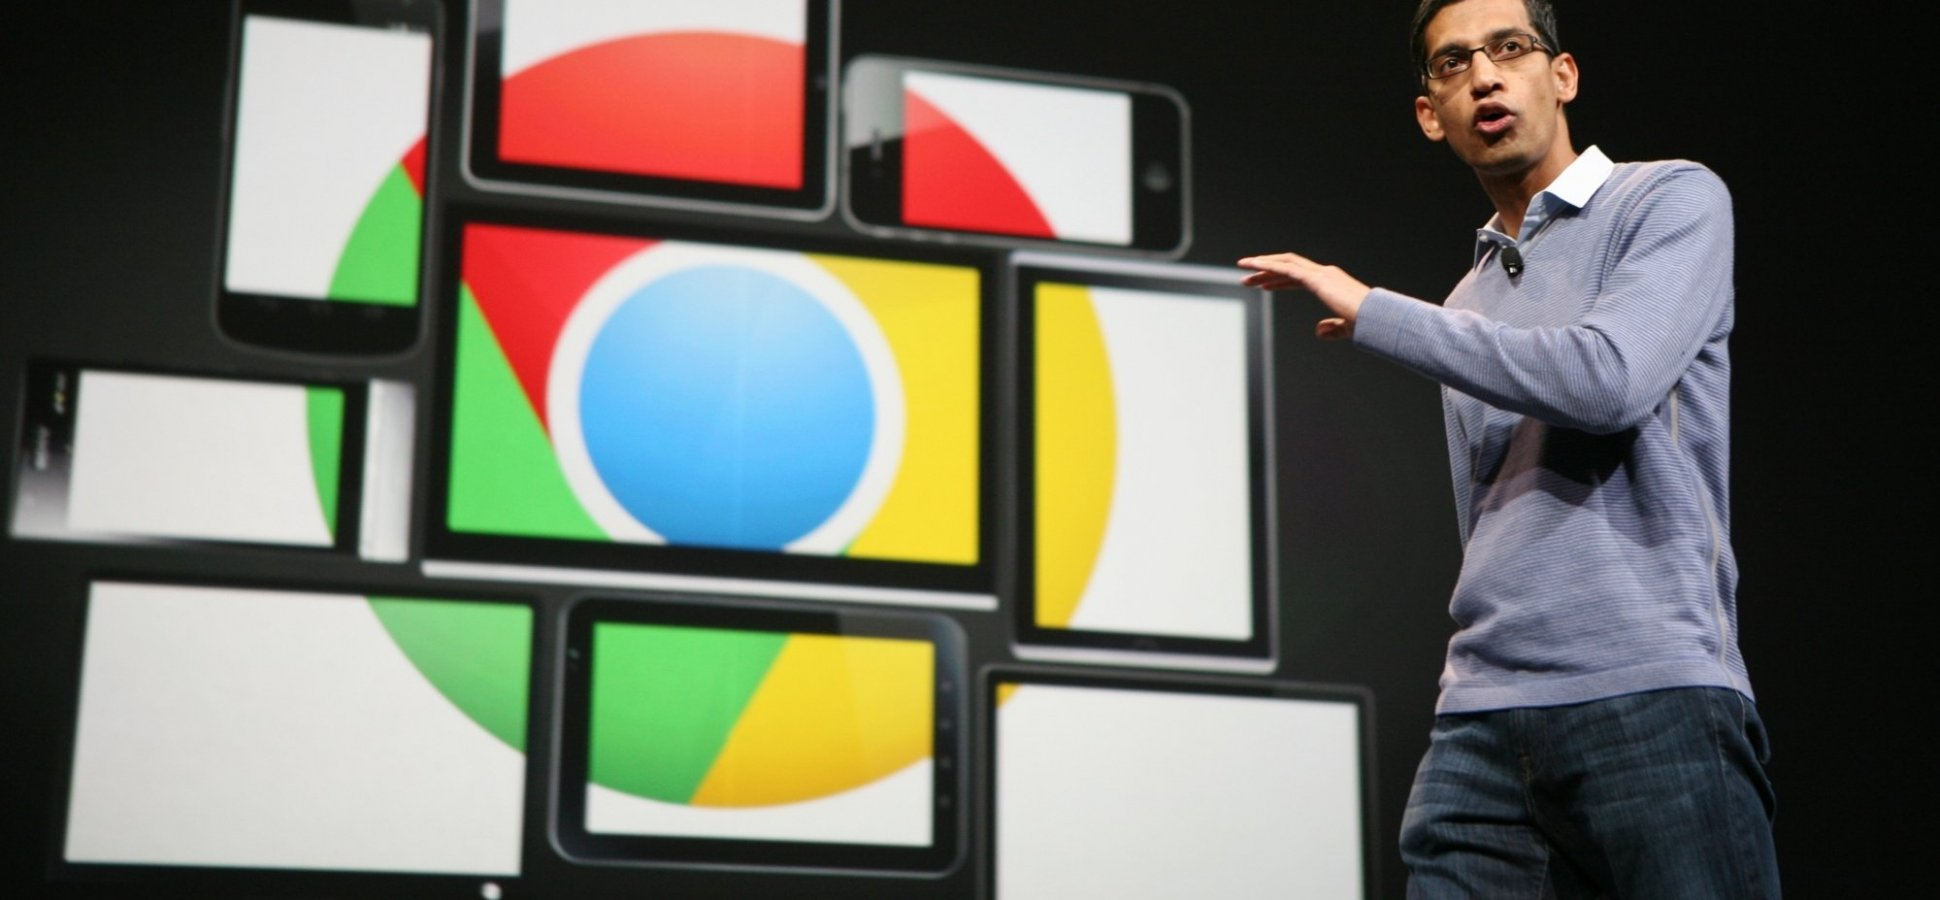 Google Is Putting an End to Ad-Blocking in Chrome: Here Are the 5